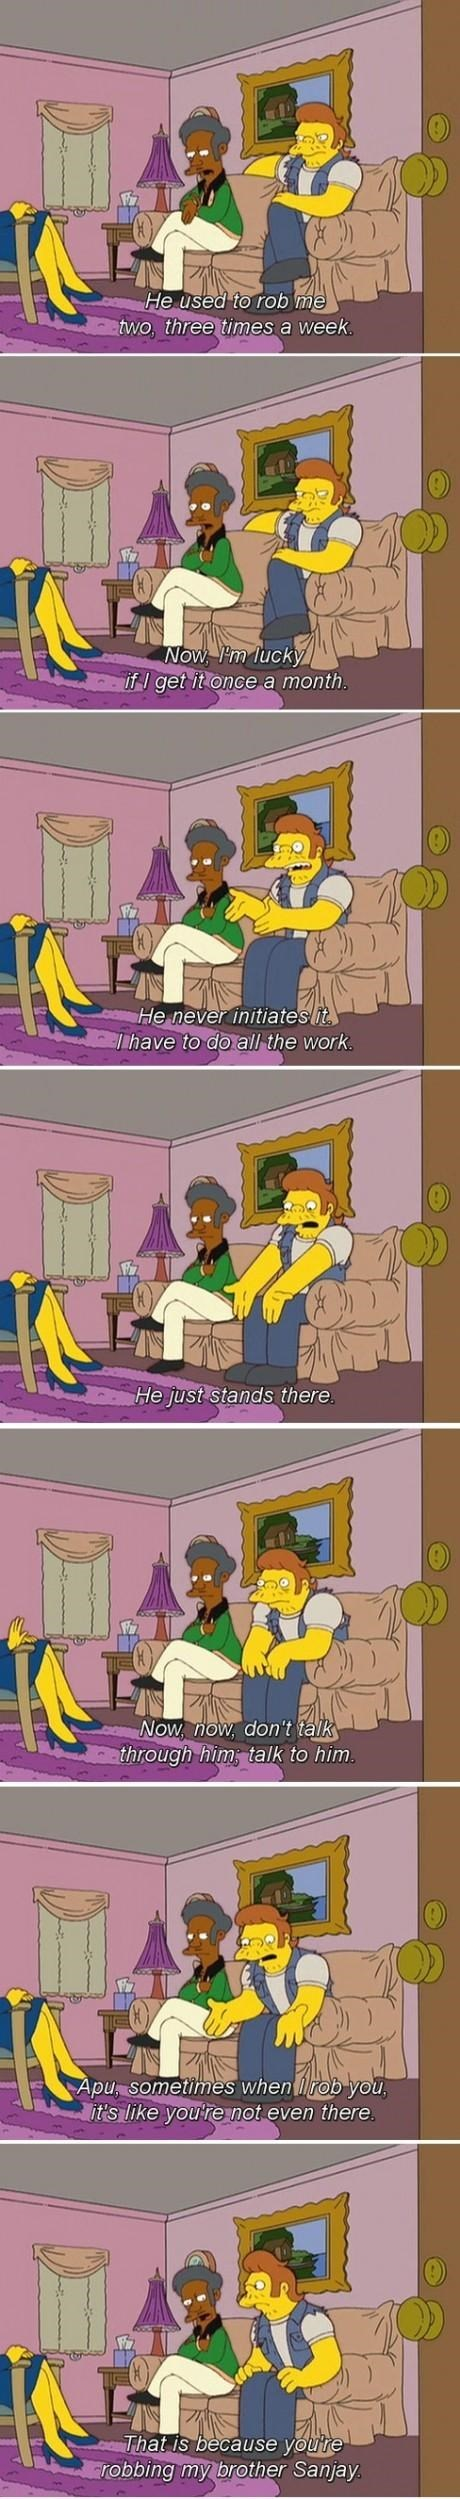 apu therapy the simpsons funny - 8129159936